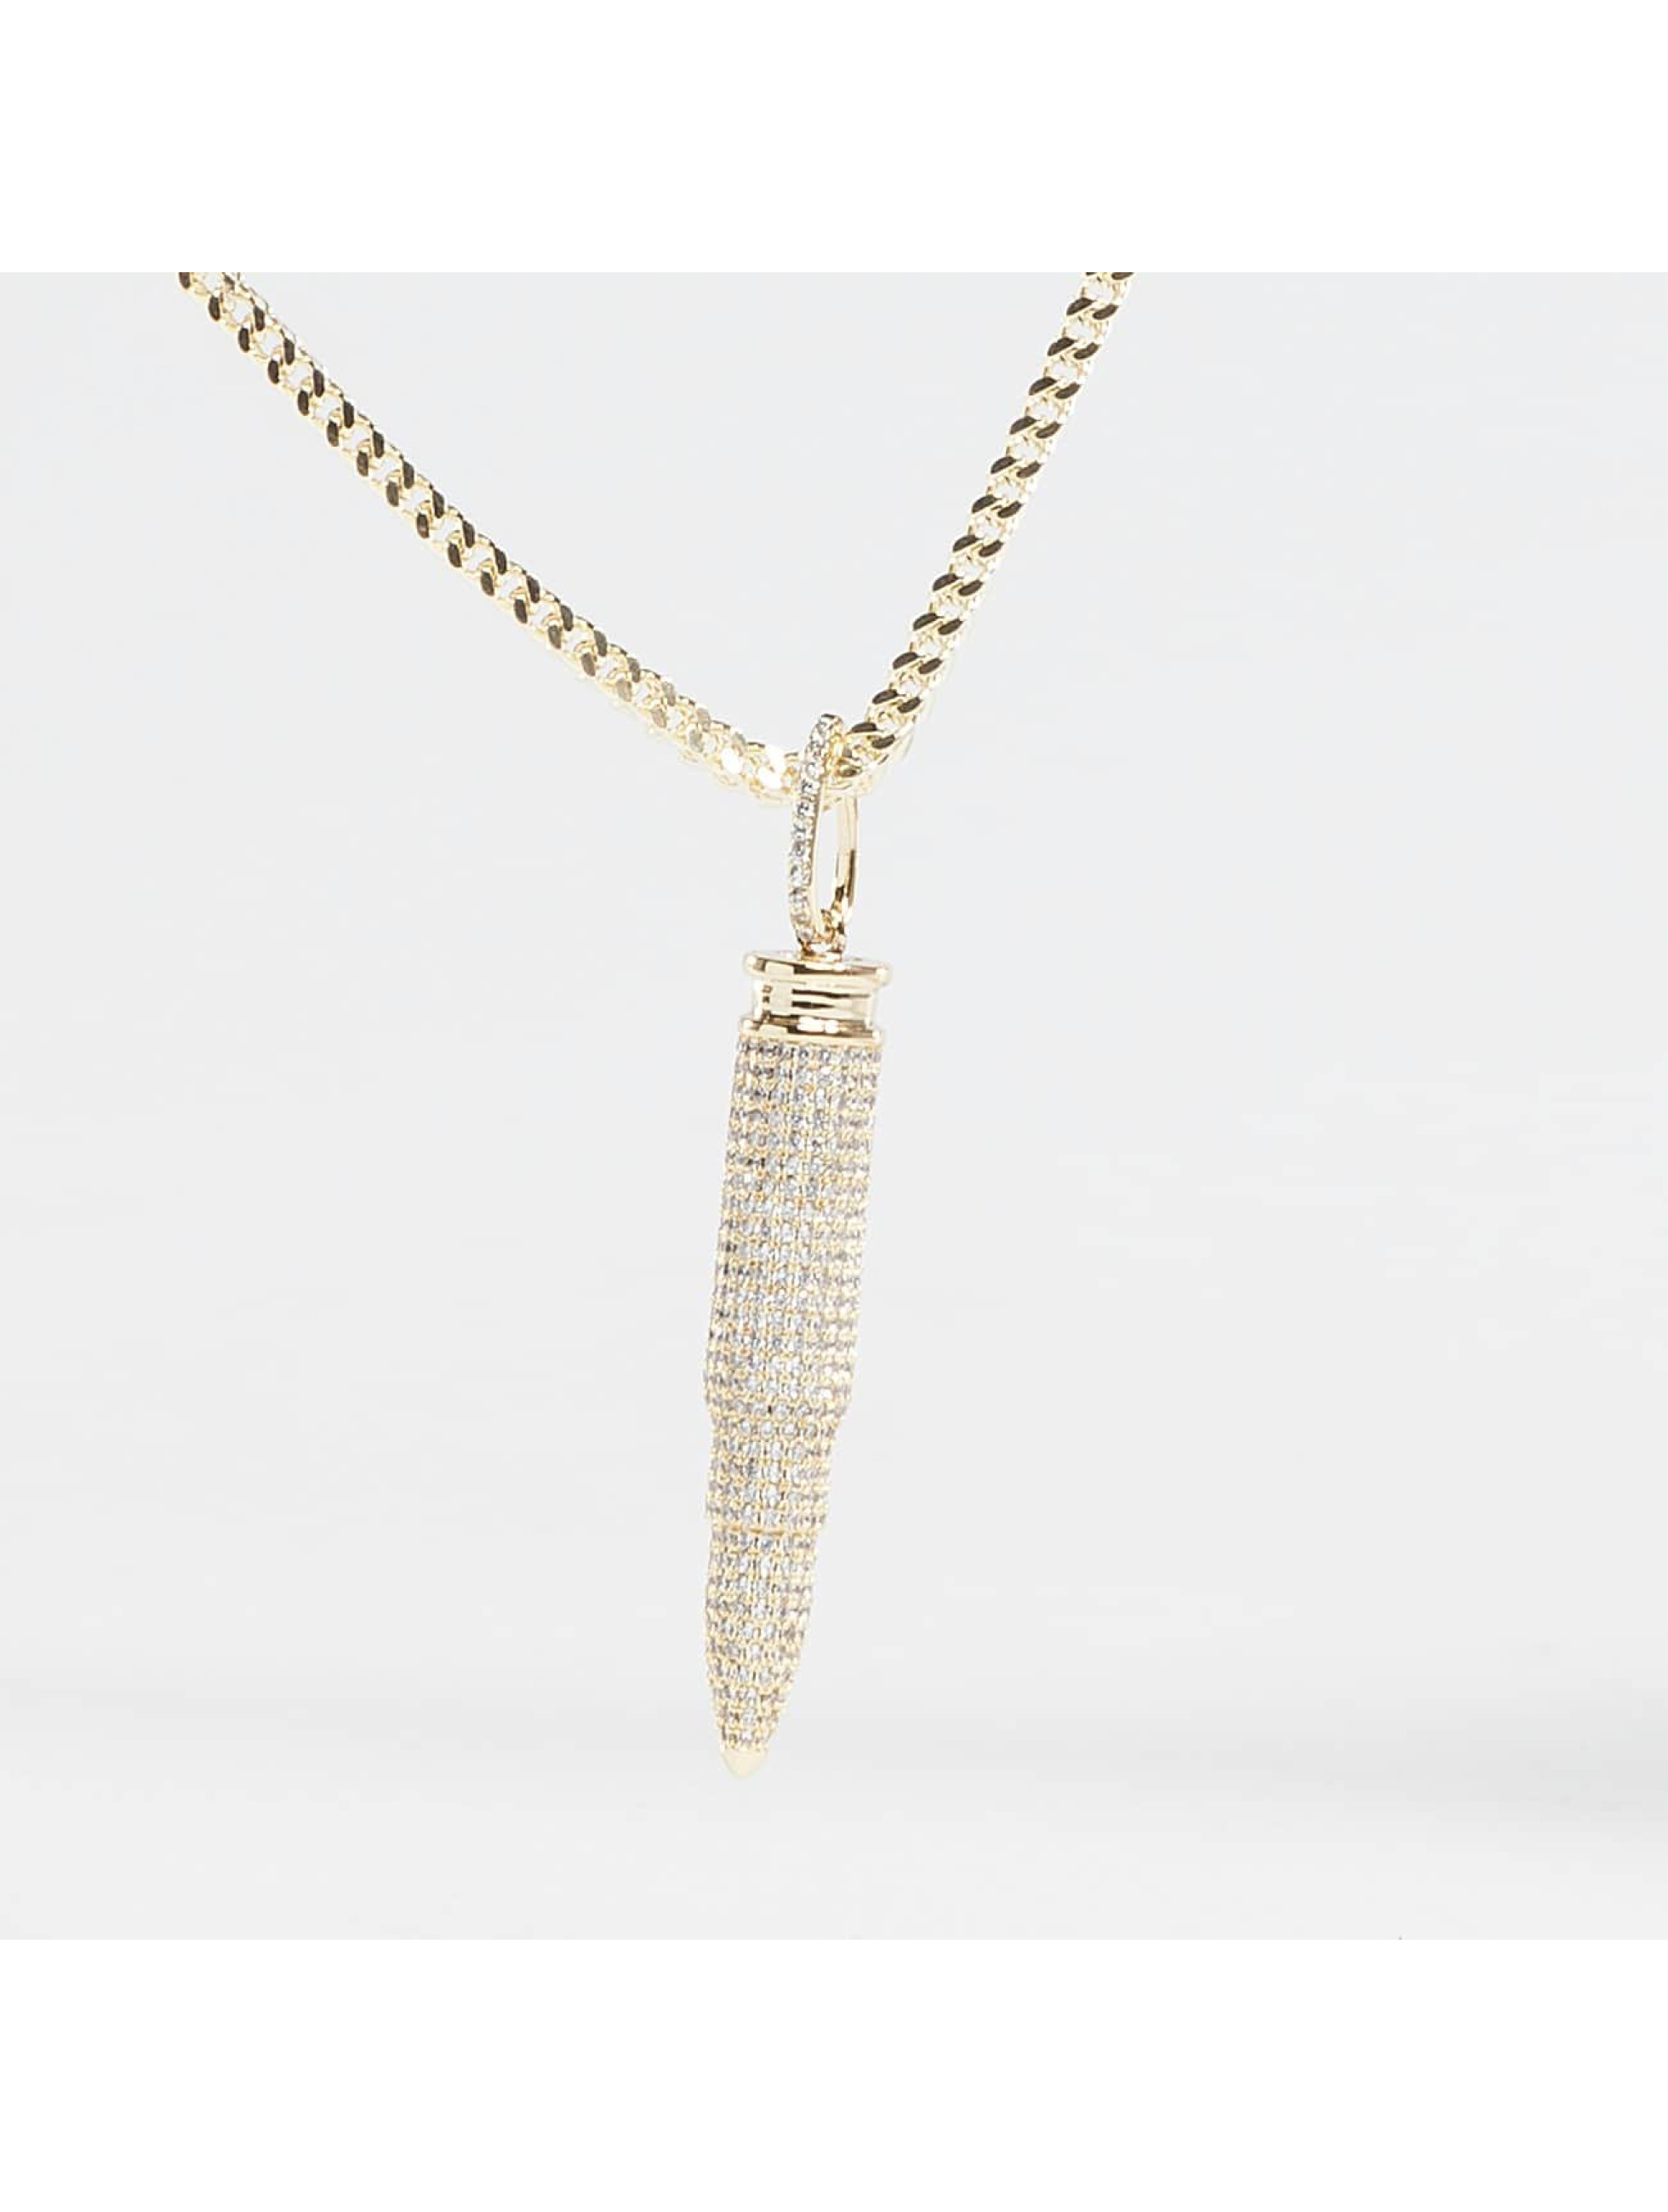 KING ICE Necklace Gold_Plated CZ 223 Caliber Bullet gold colored